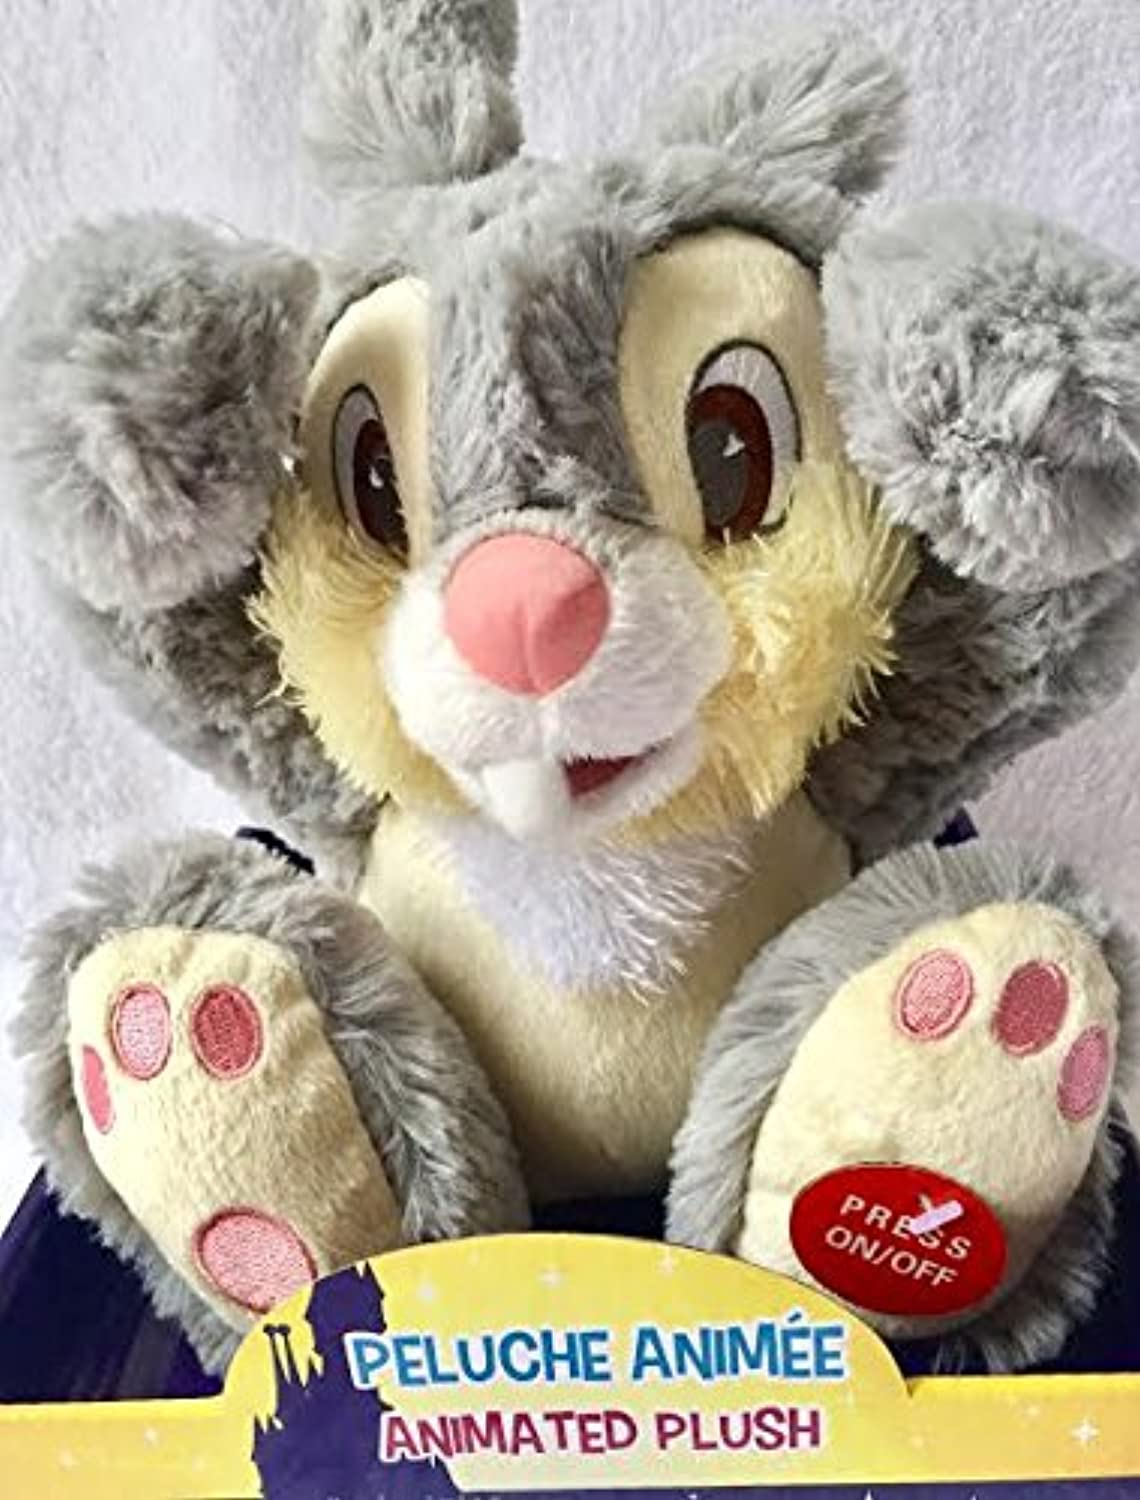 Disney's Authentic Animated plush soft, Musical talking, peek a boo Thumper